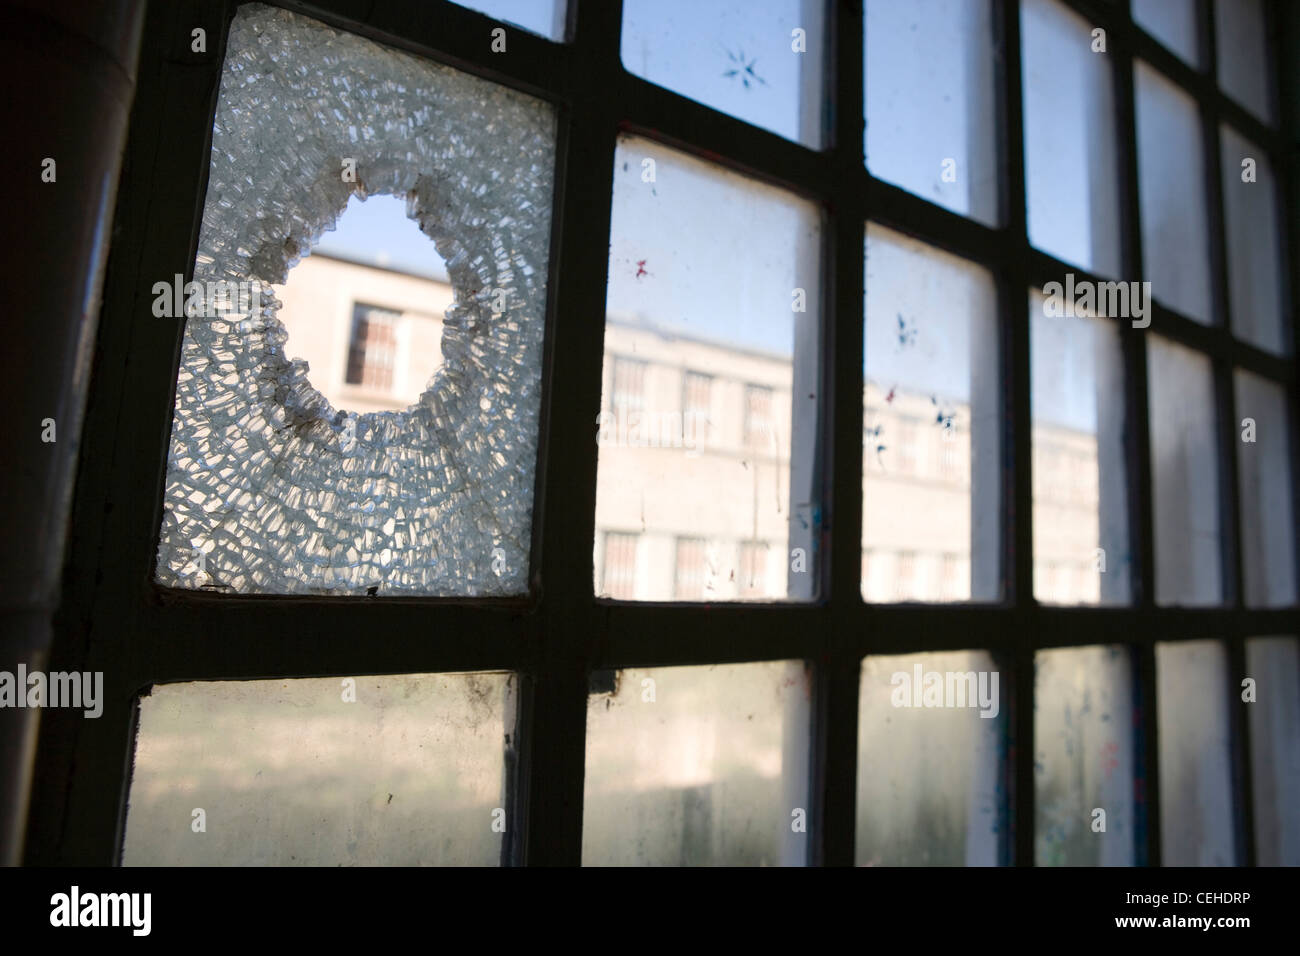 broken window hole glass shattered looking out horizontal - Stock Image